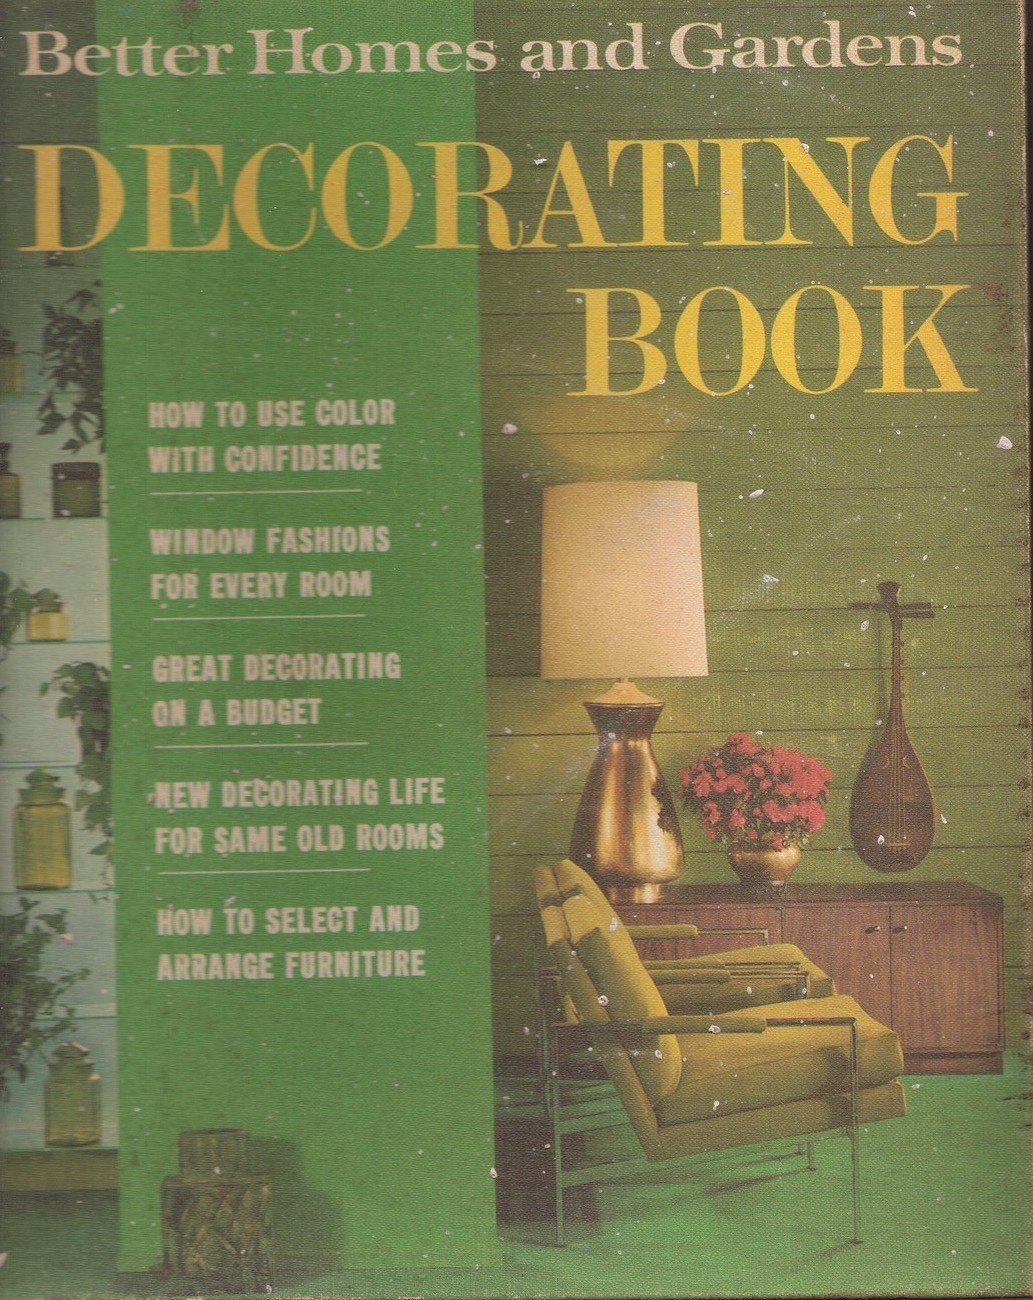 Better Homes And Gardens Decorating Book 1968 Antiquarian Collectible